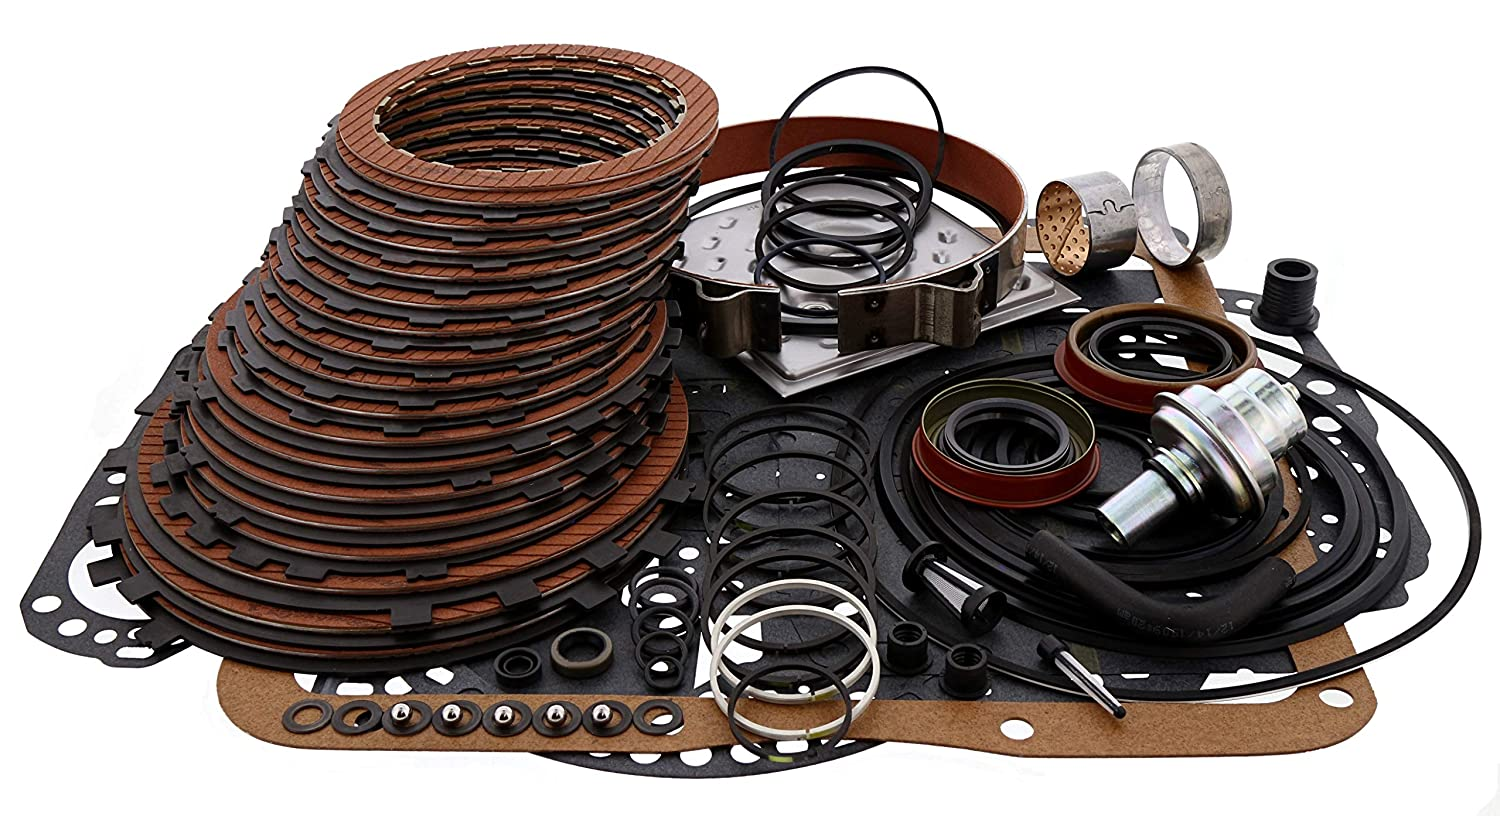 Amazon.com: TH350 Turbo 350 Transmission Raybestos Stage 1 Master Level 2 Rebuild Kit: Automotive